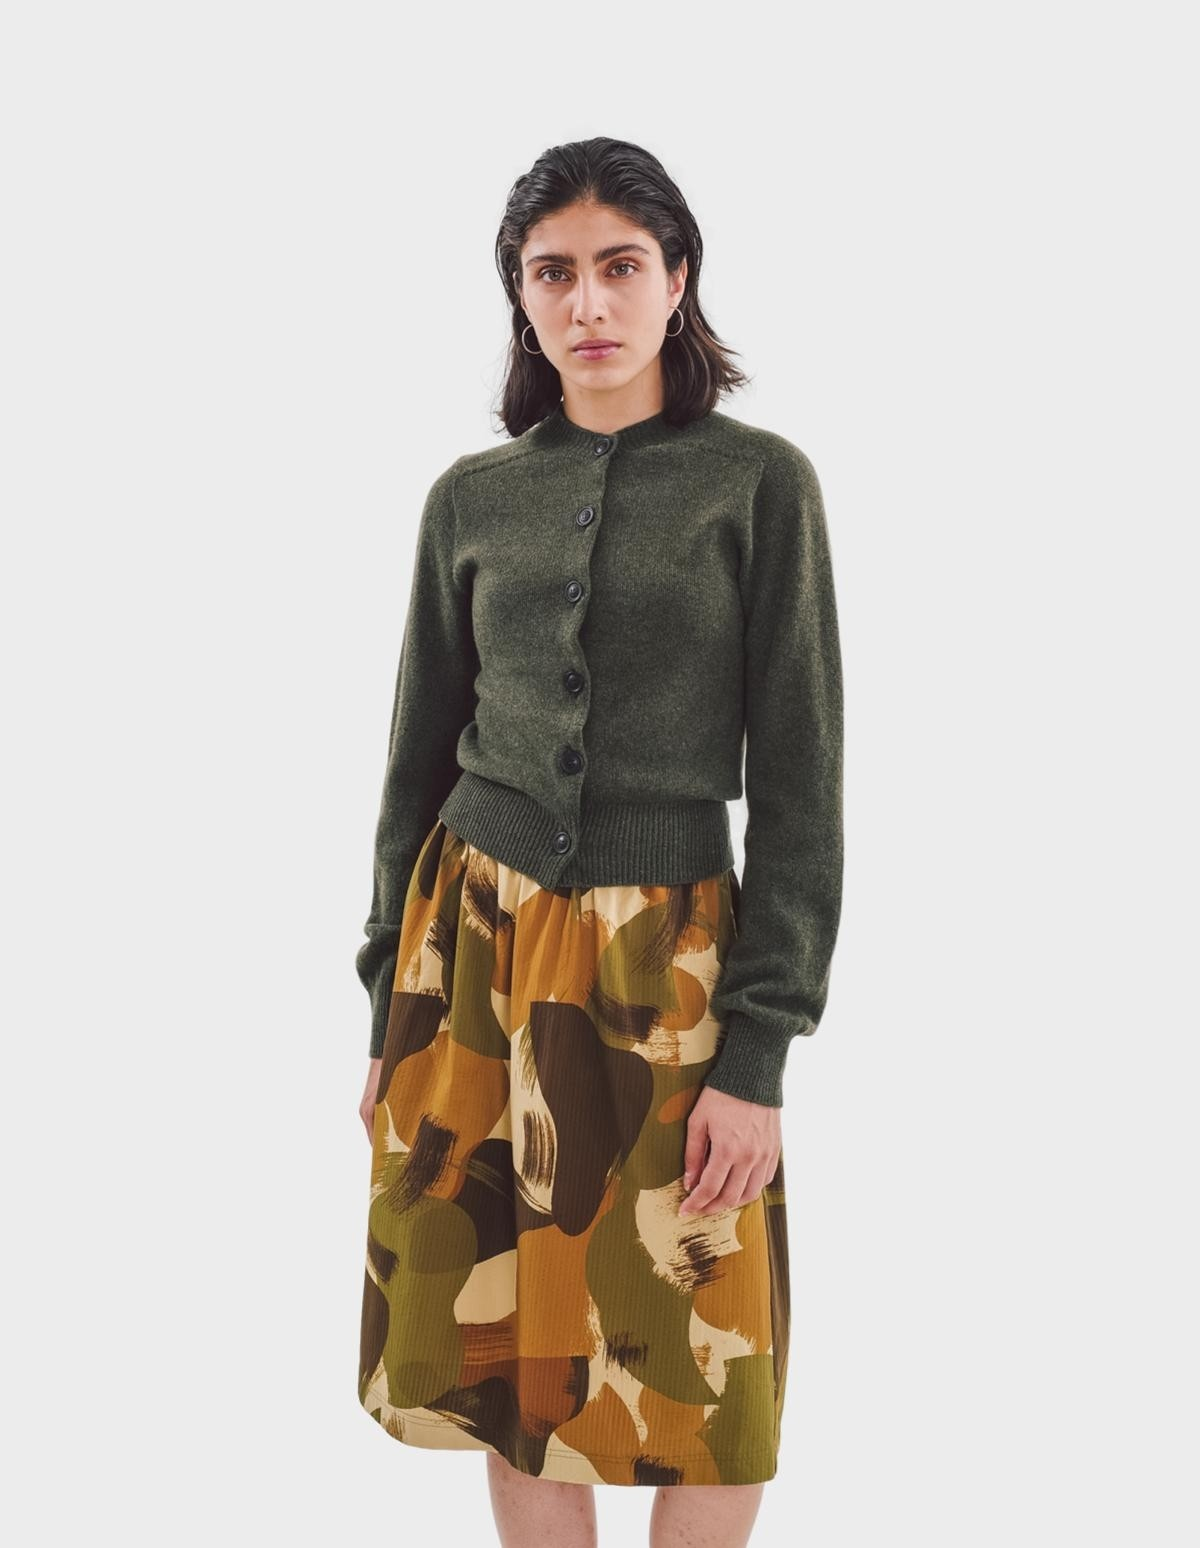 YMC You Must Create Frida Skirt in Multi